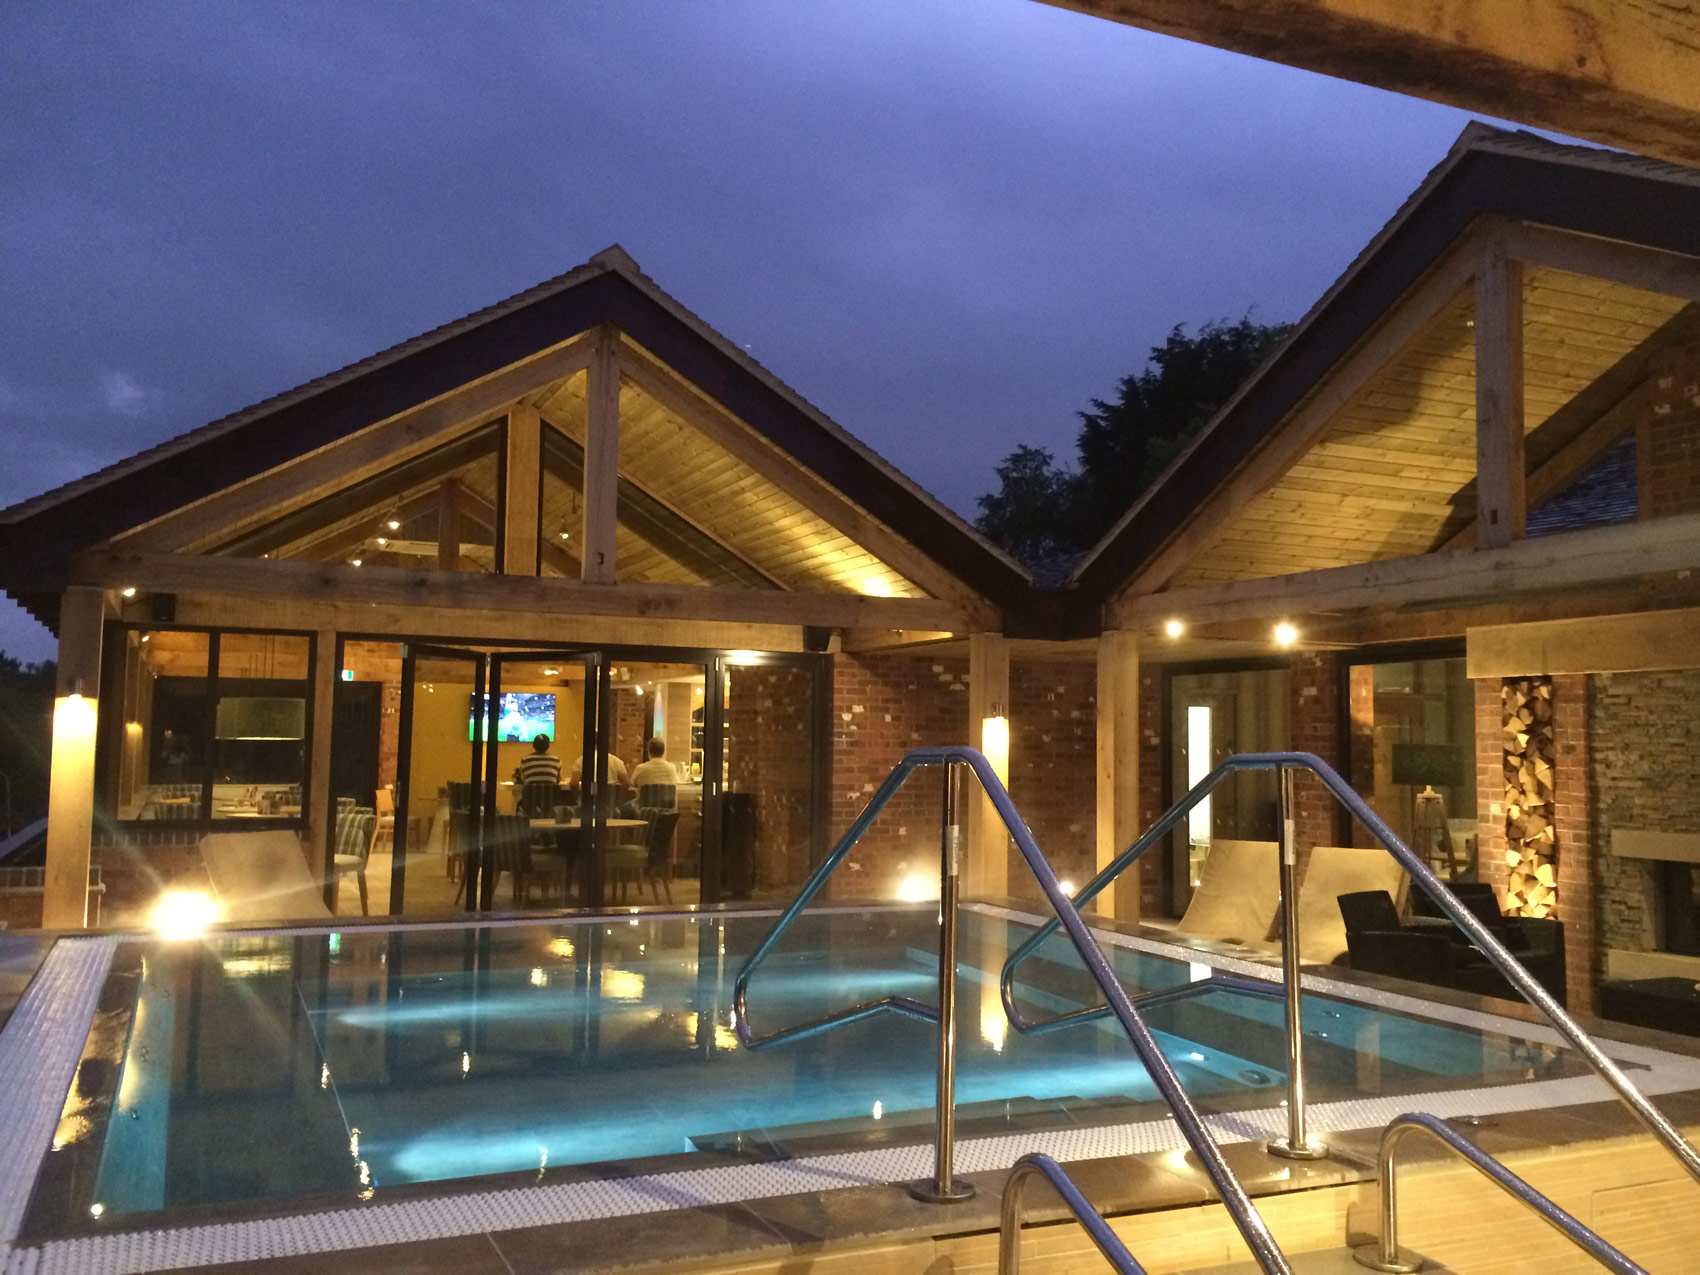 A Winter Treat Spa-cation At Staffordshire's Moddershall Oaks 4